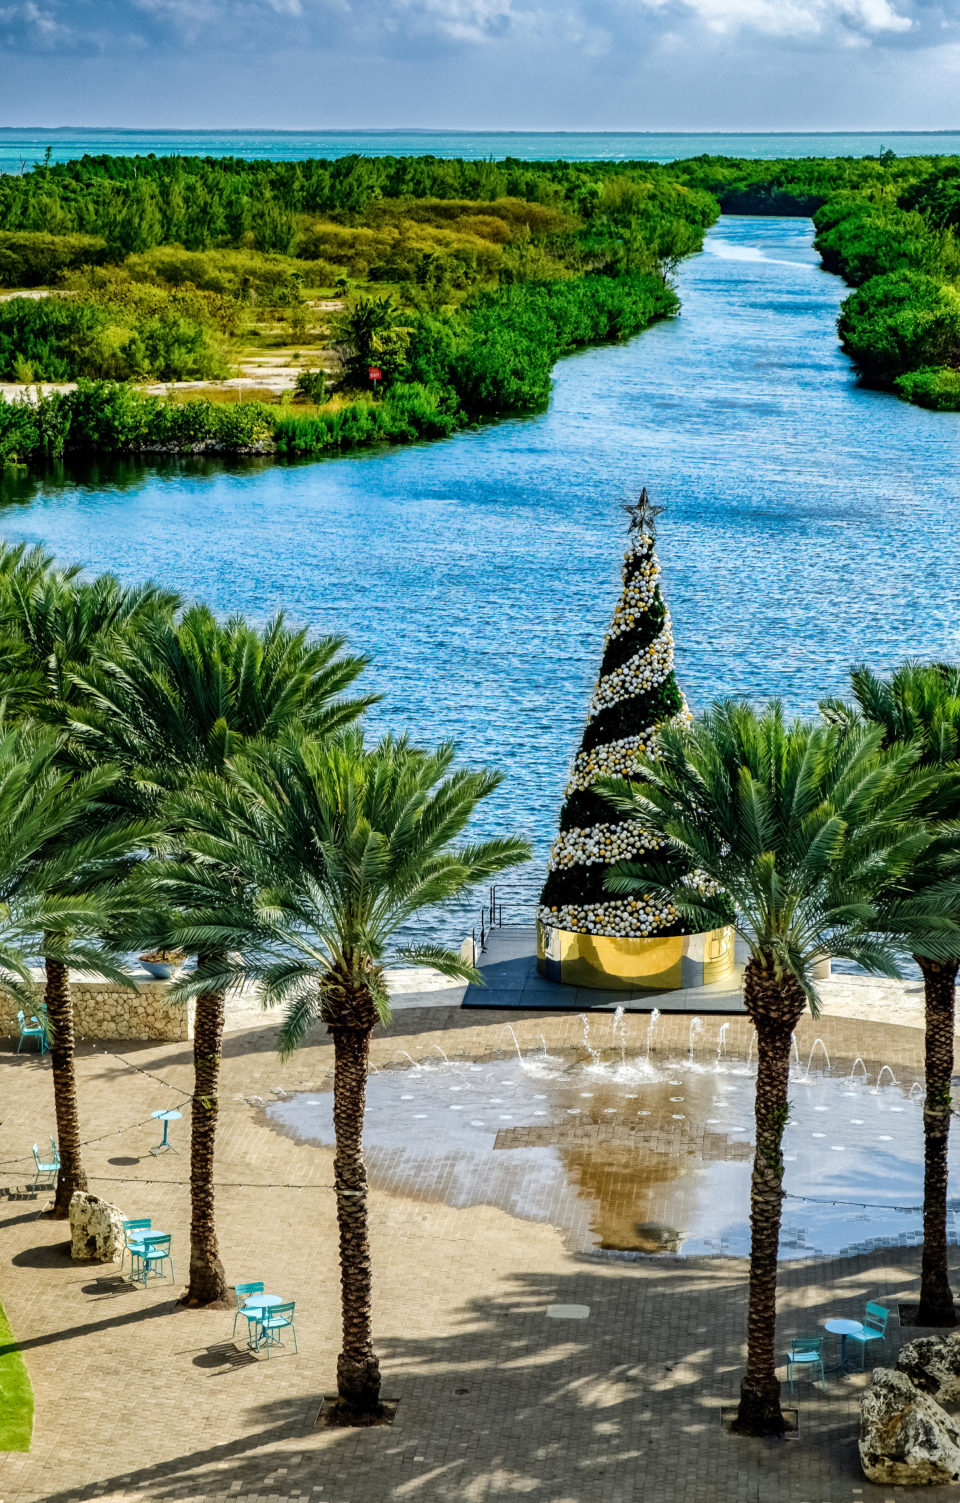 Giant Outdoor Christmas Tree with Gold and Silver Ornaments on Gold Package Base by Waterfront